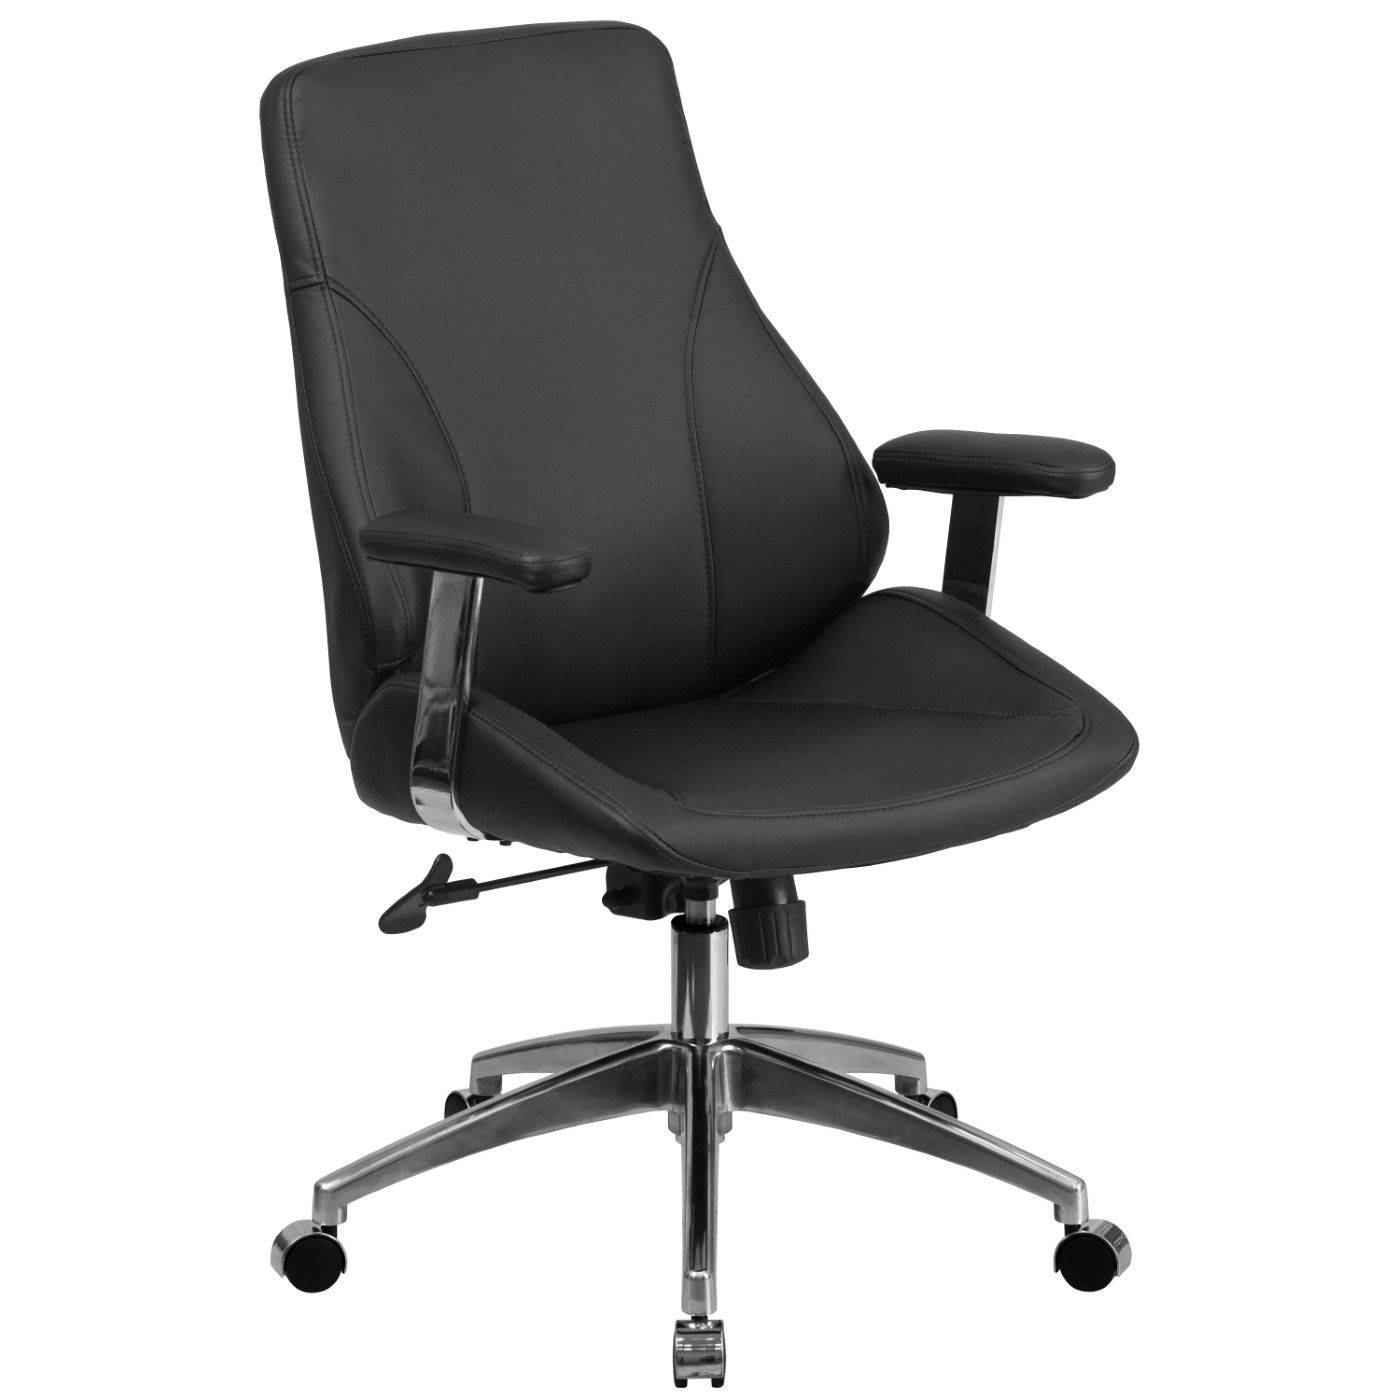 Mid-Back Black LeatherSoft Smooth Upholstered Executive Swivel Office Chair with Arms